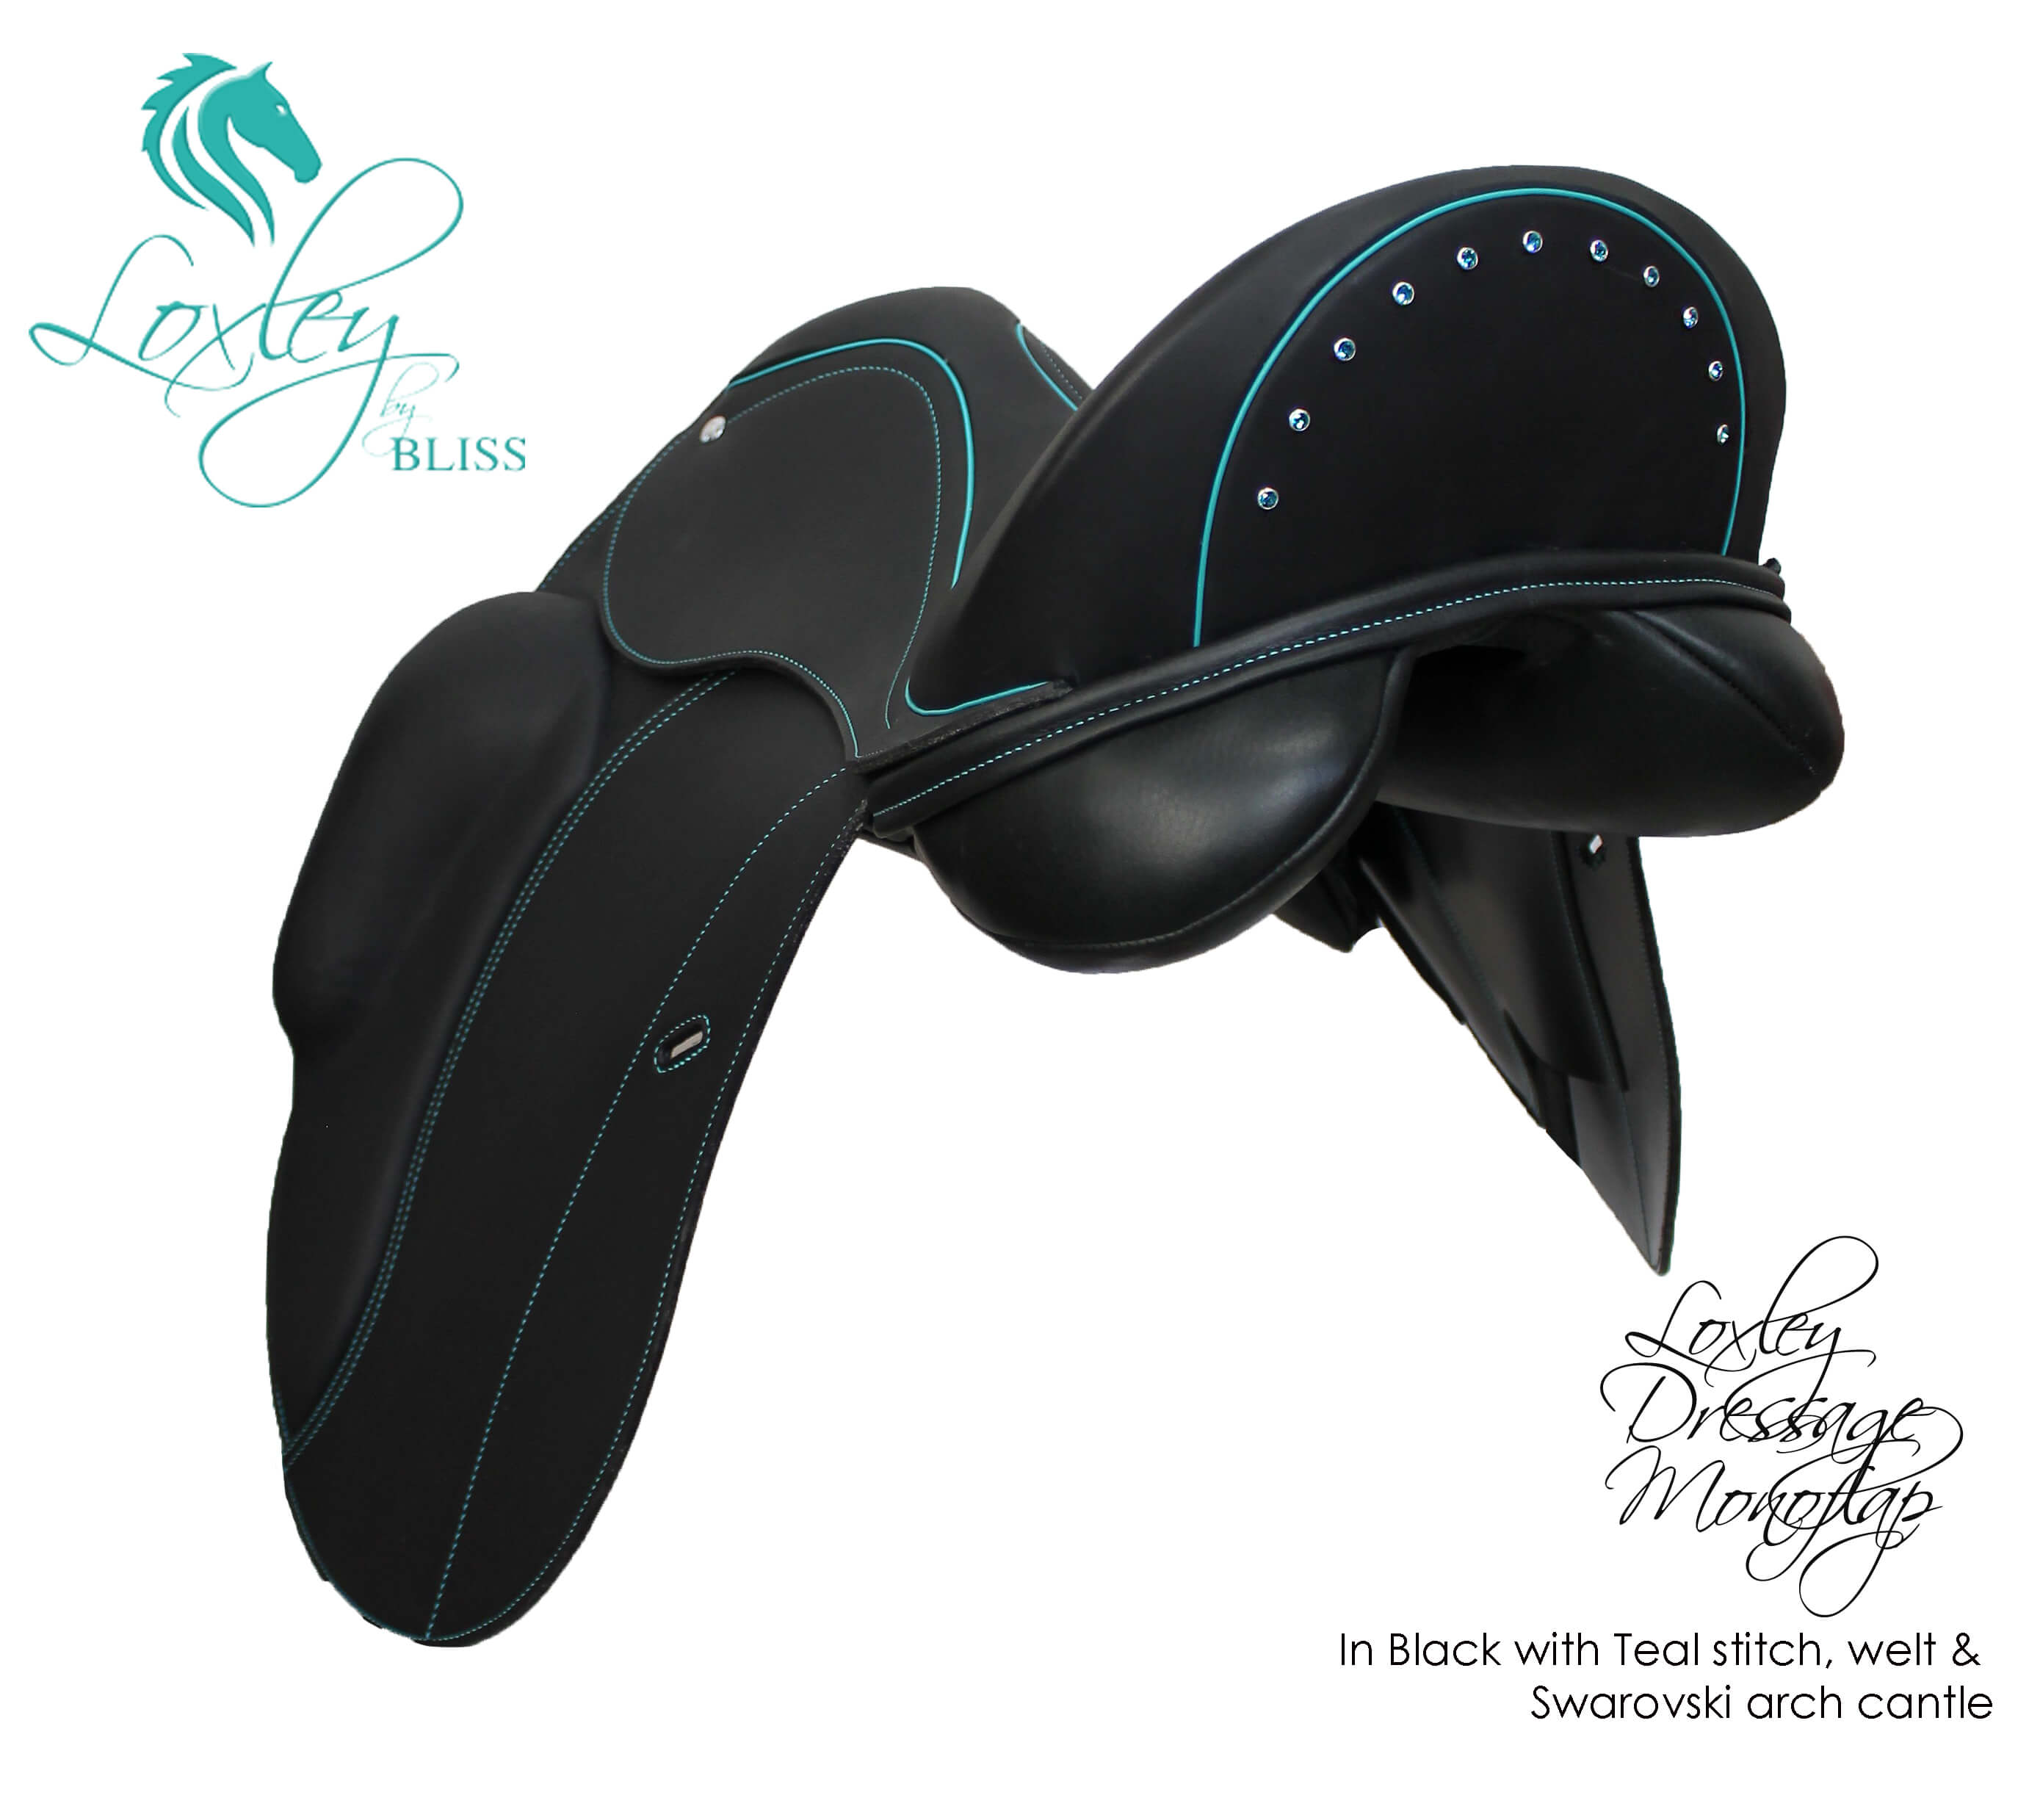 28 Loxley Dressage Monoflap - black & teal arch 34